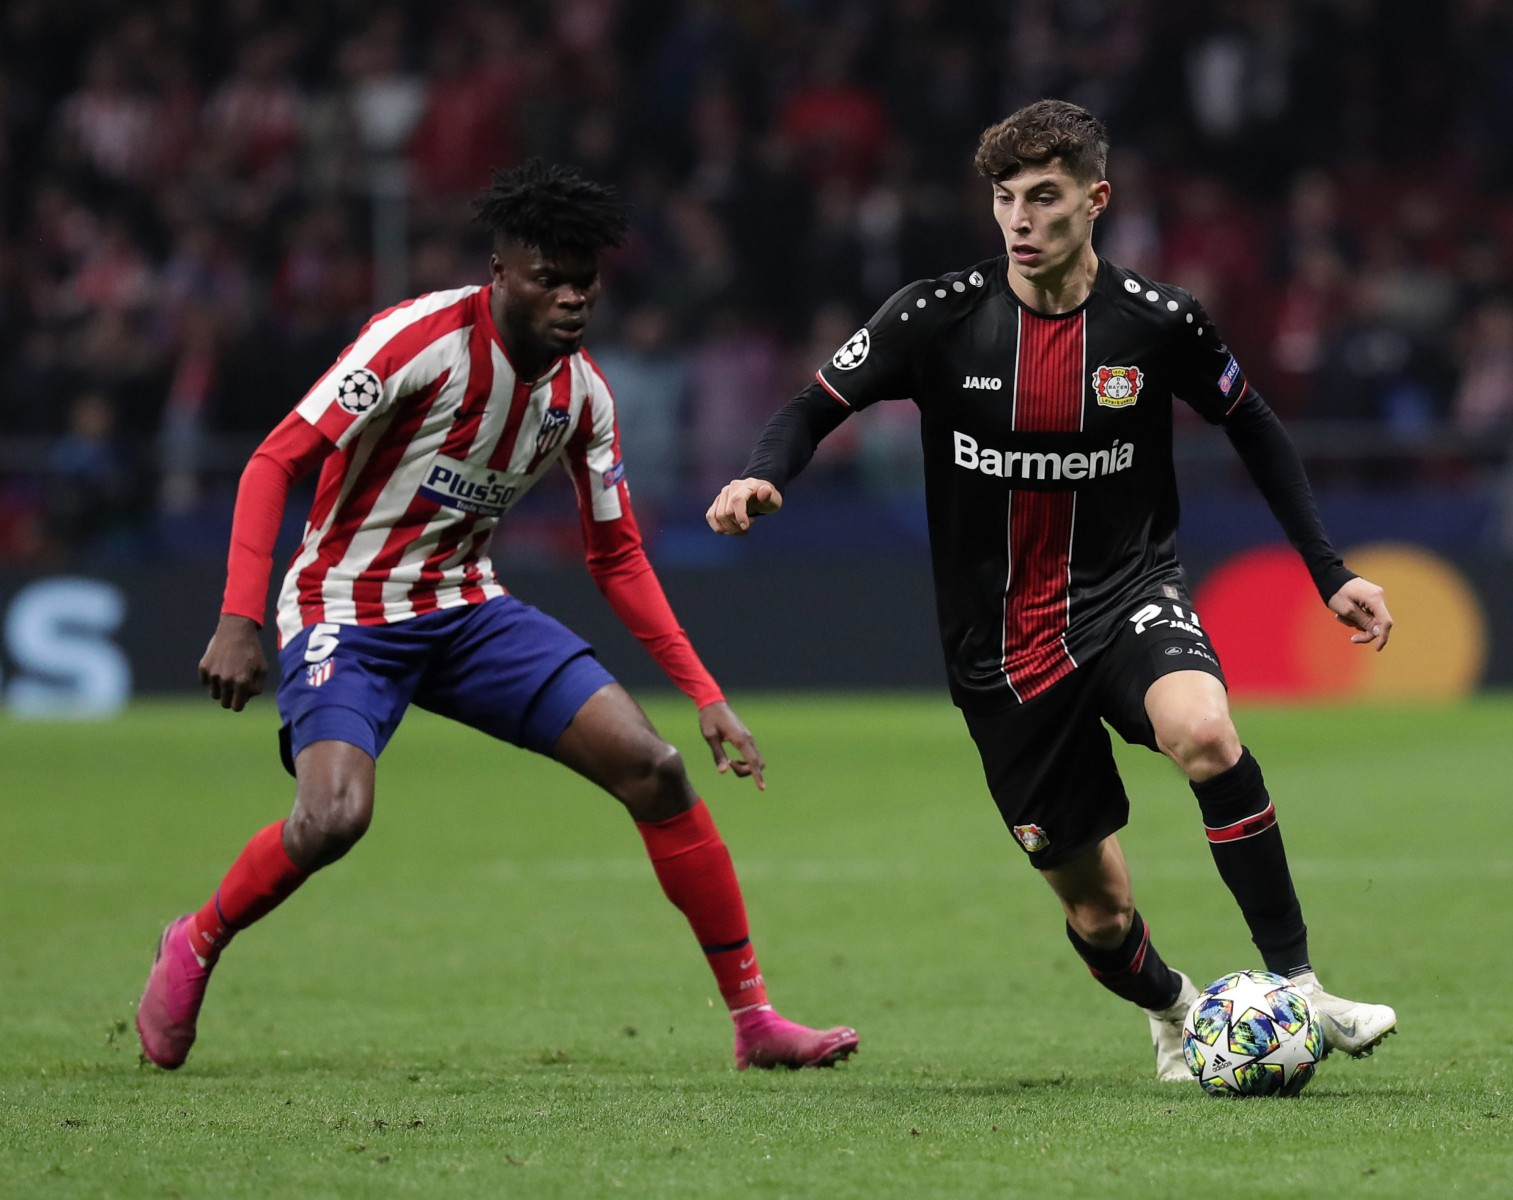 Havertz has been in fine form over the past 14 months, excelling for Bayer Leverkusen and breaking into the Germany team